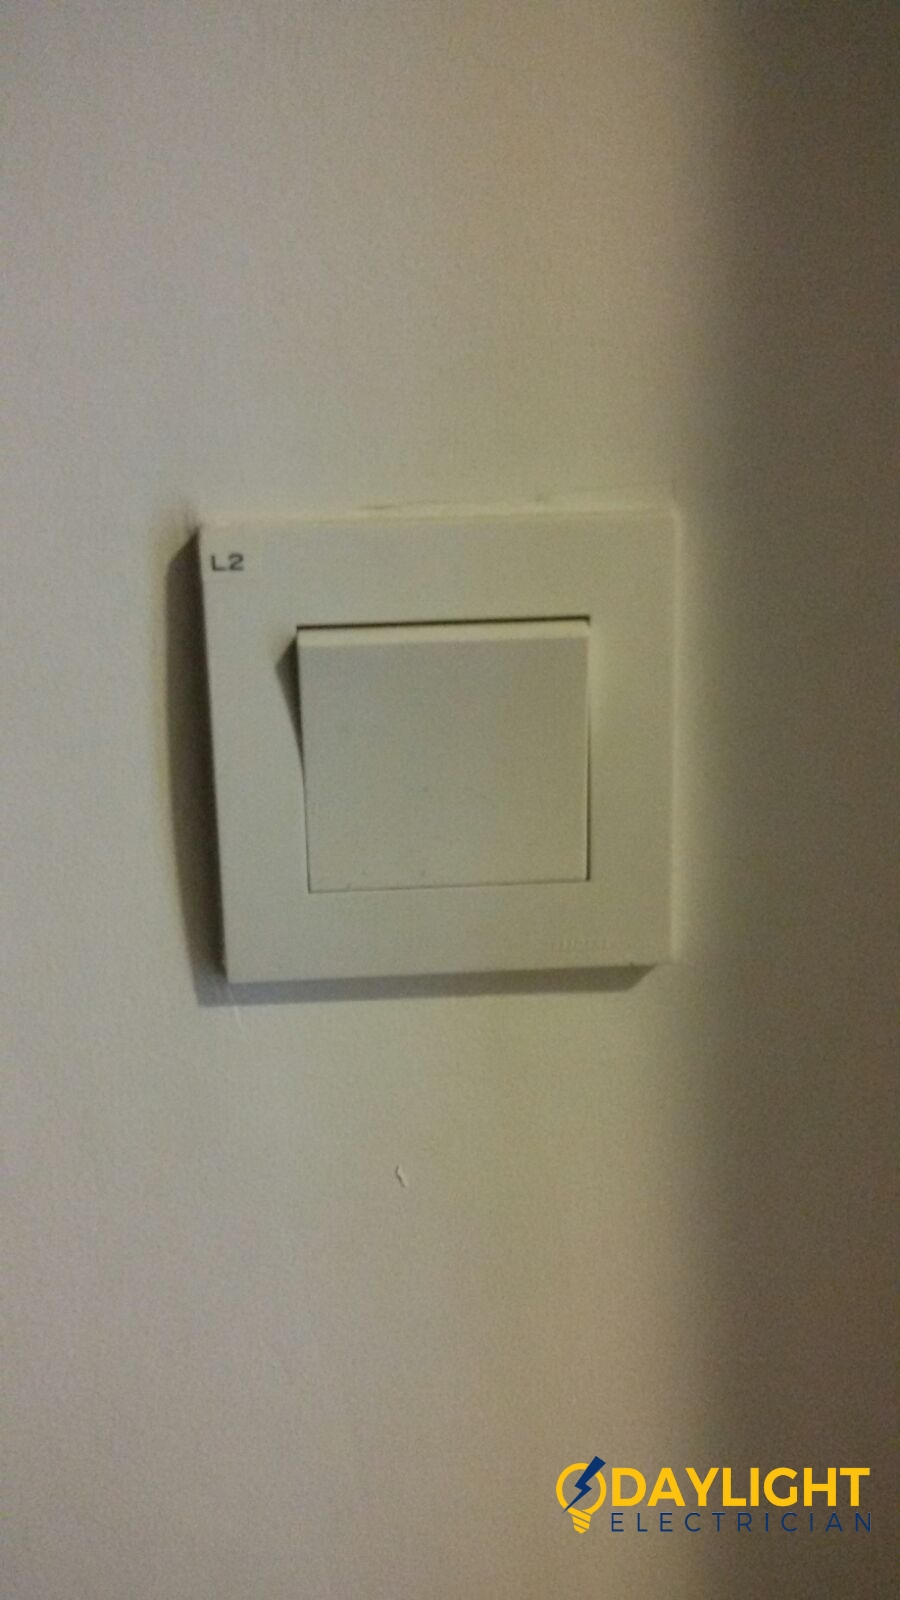 Change-light-switches-light-bulbs-electrician-singapore-landed-cashew-road-6_wm